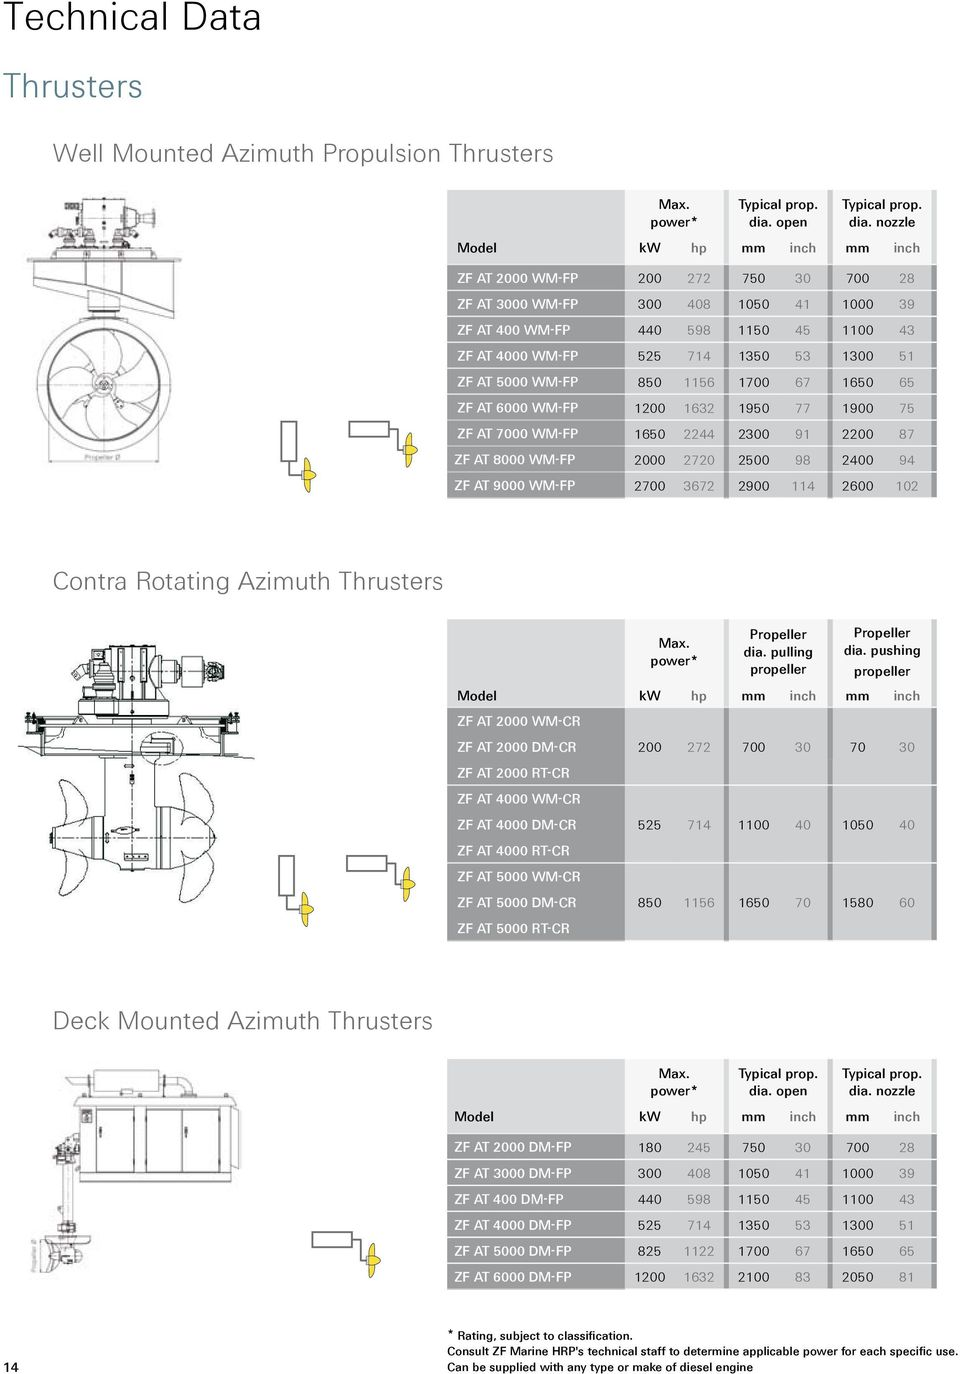 marine propulsion systems pdf outboard parts diagram nozzle model kw hp mm inch mm inch zf at 2000 wm fp 200 272